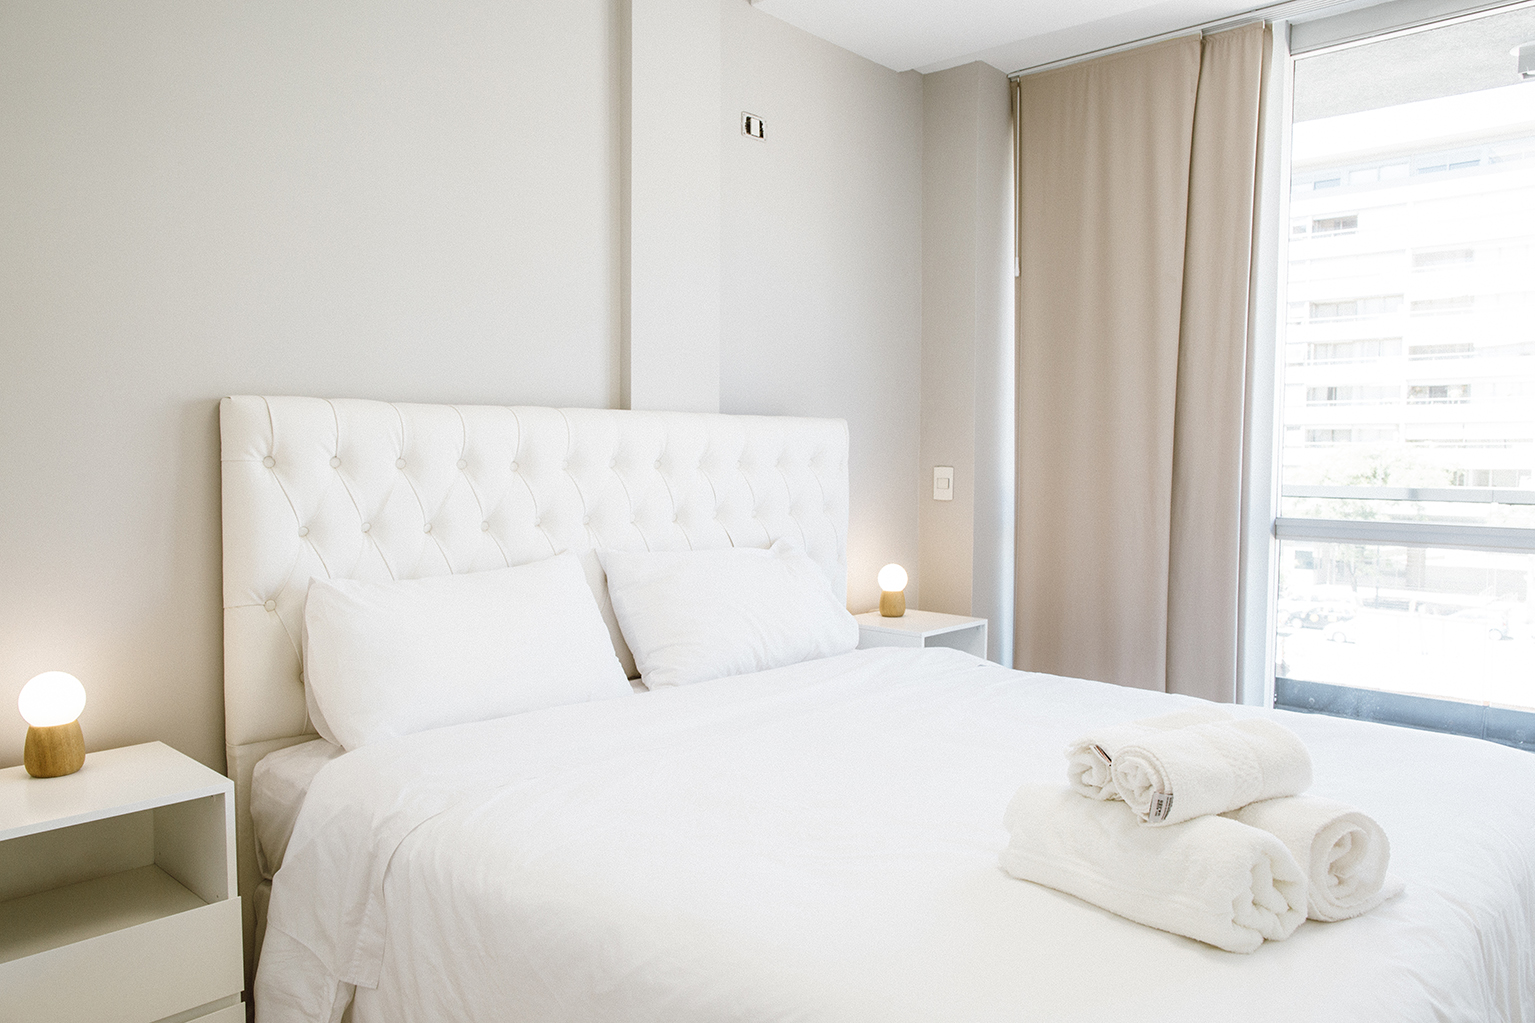 Bedroom at Lumiere Apartments